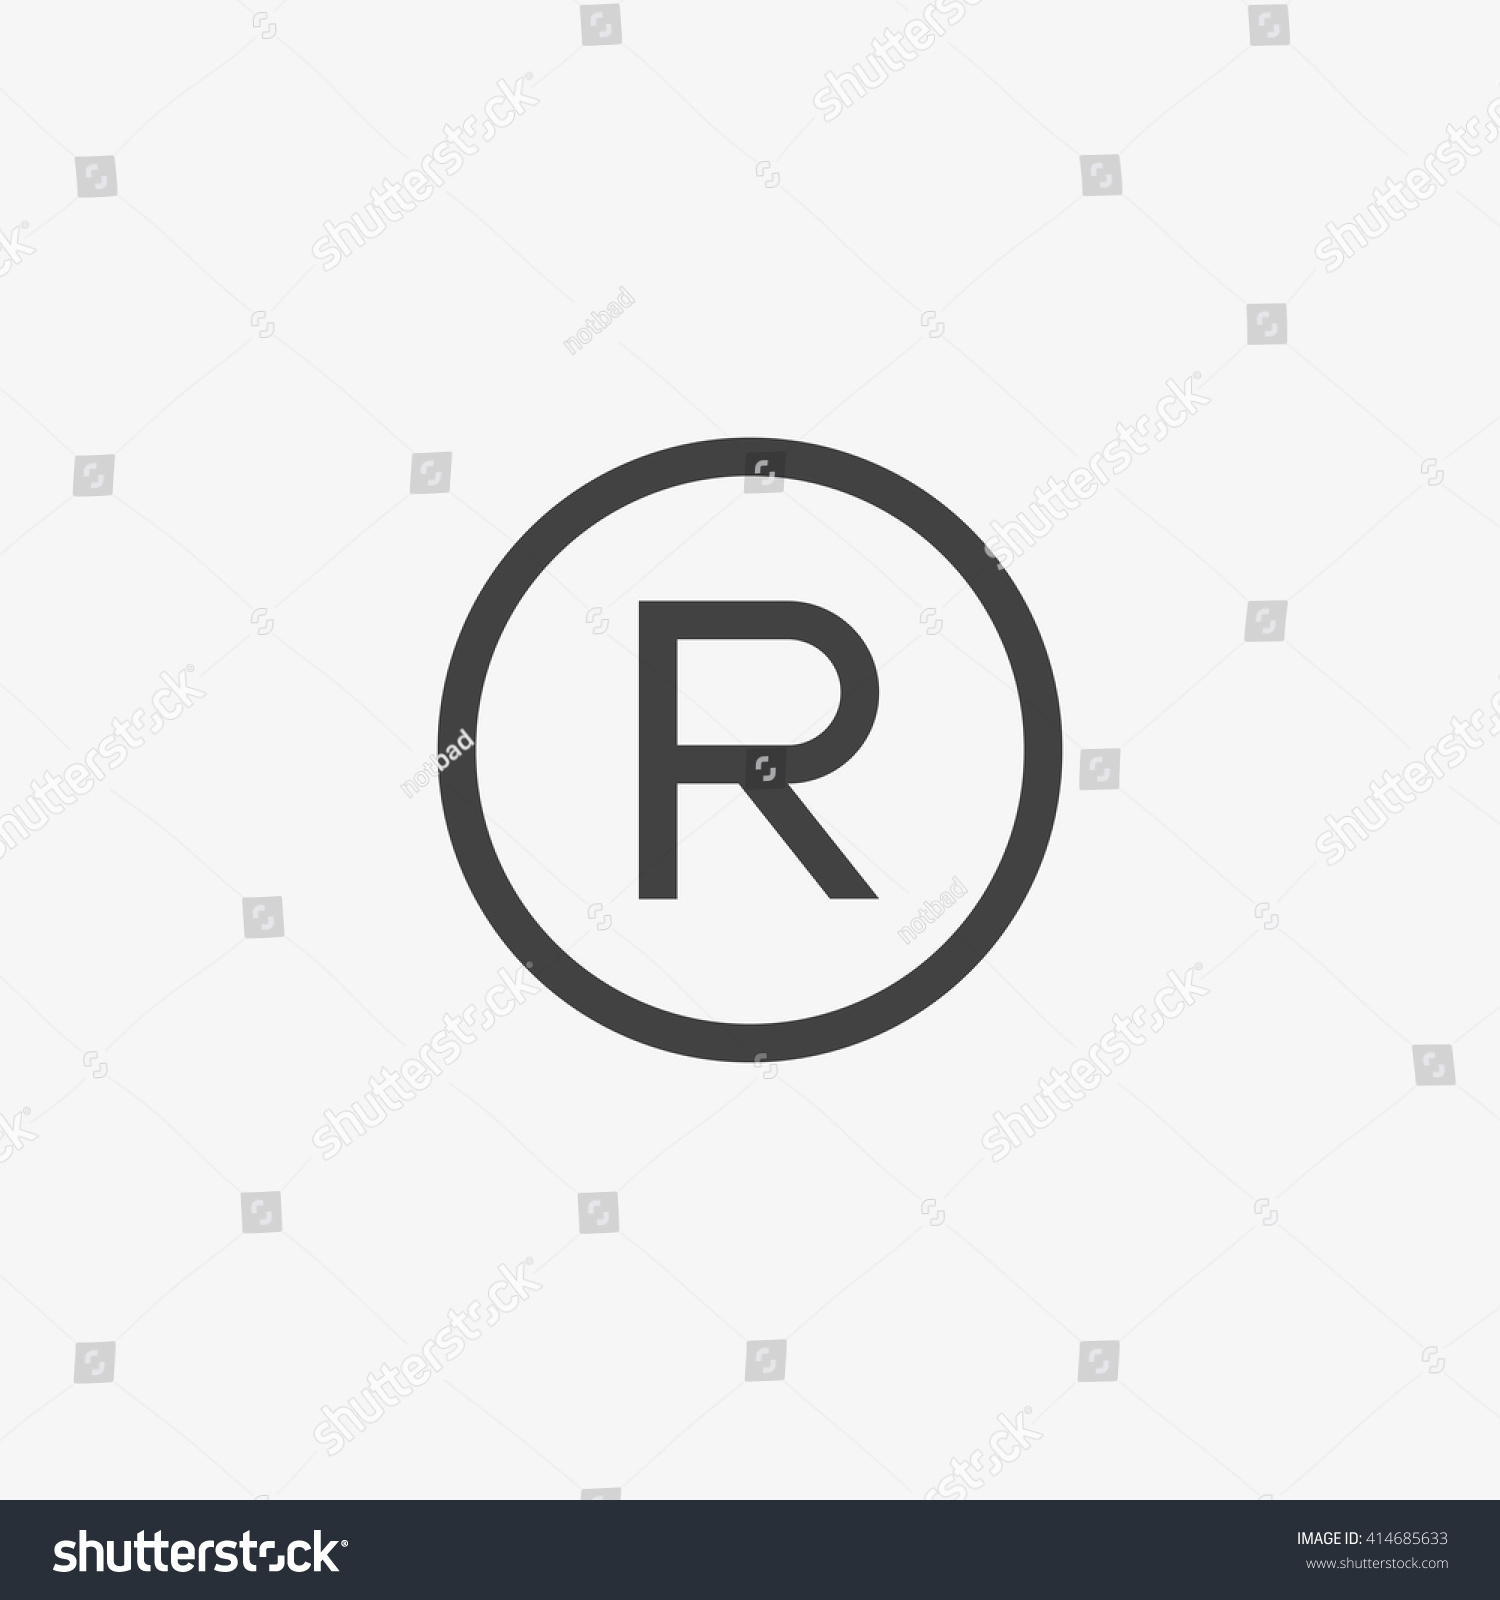 Registered Trademark Symbol Isolated On Grey Stock Vector ...